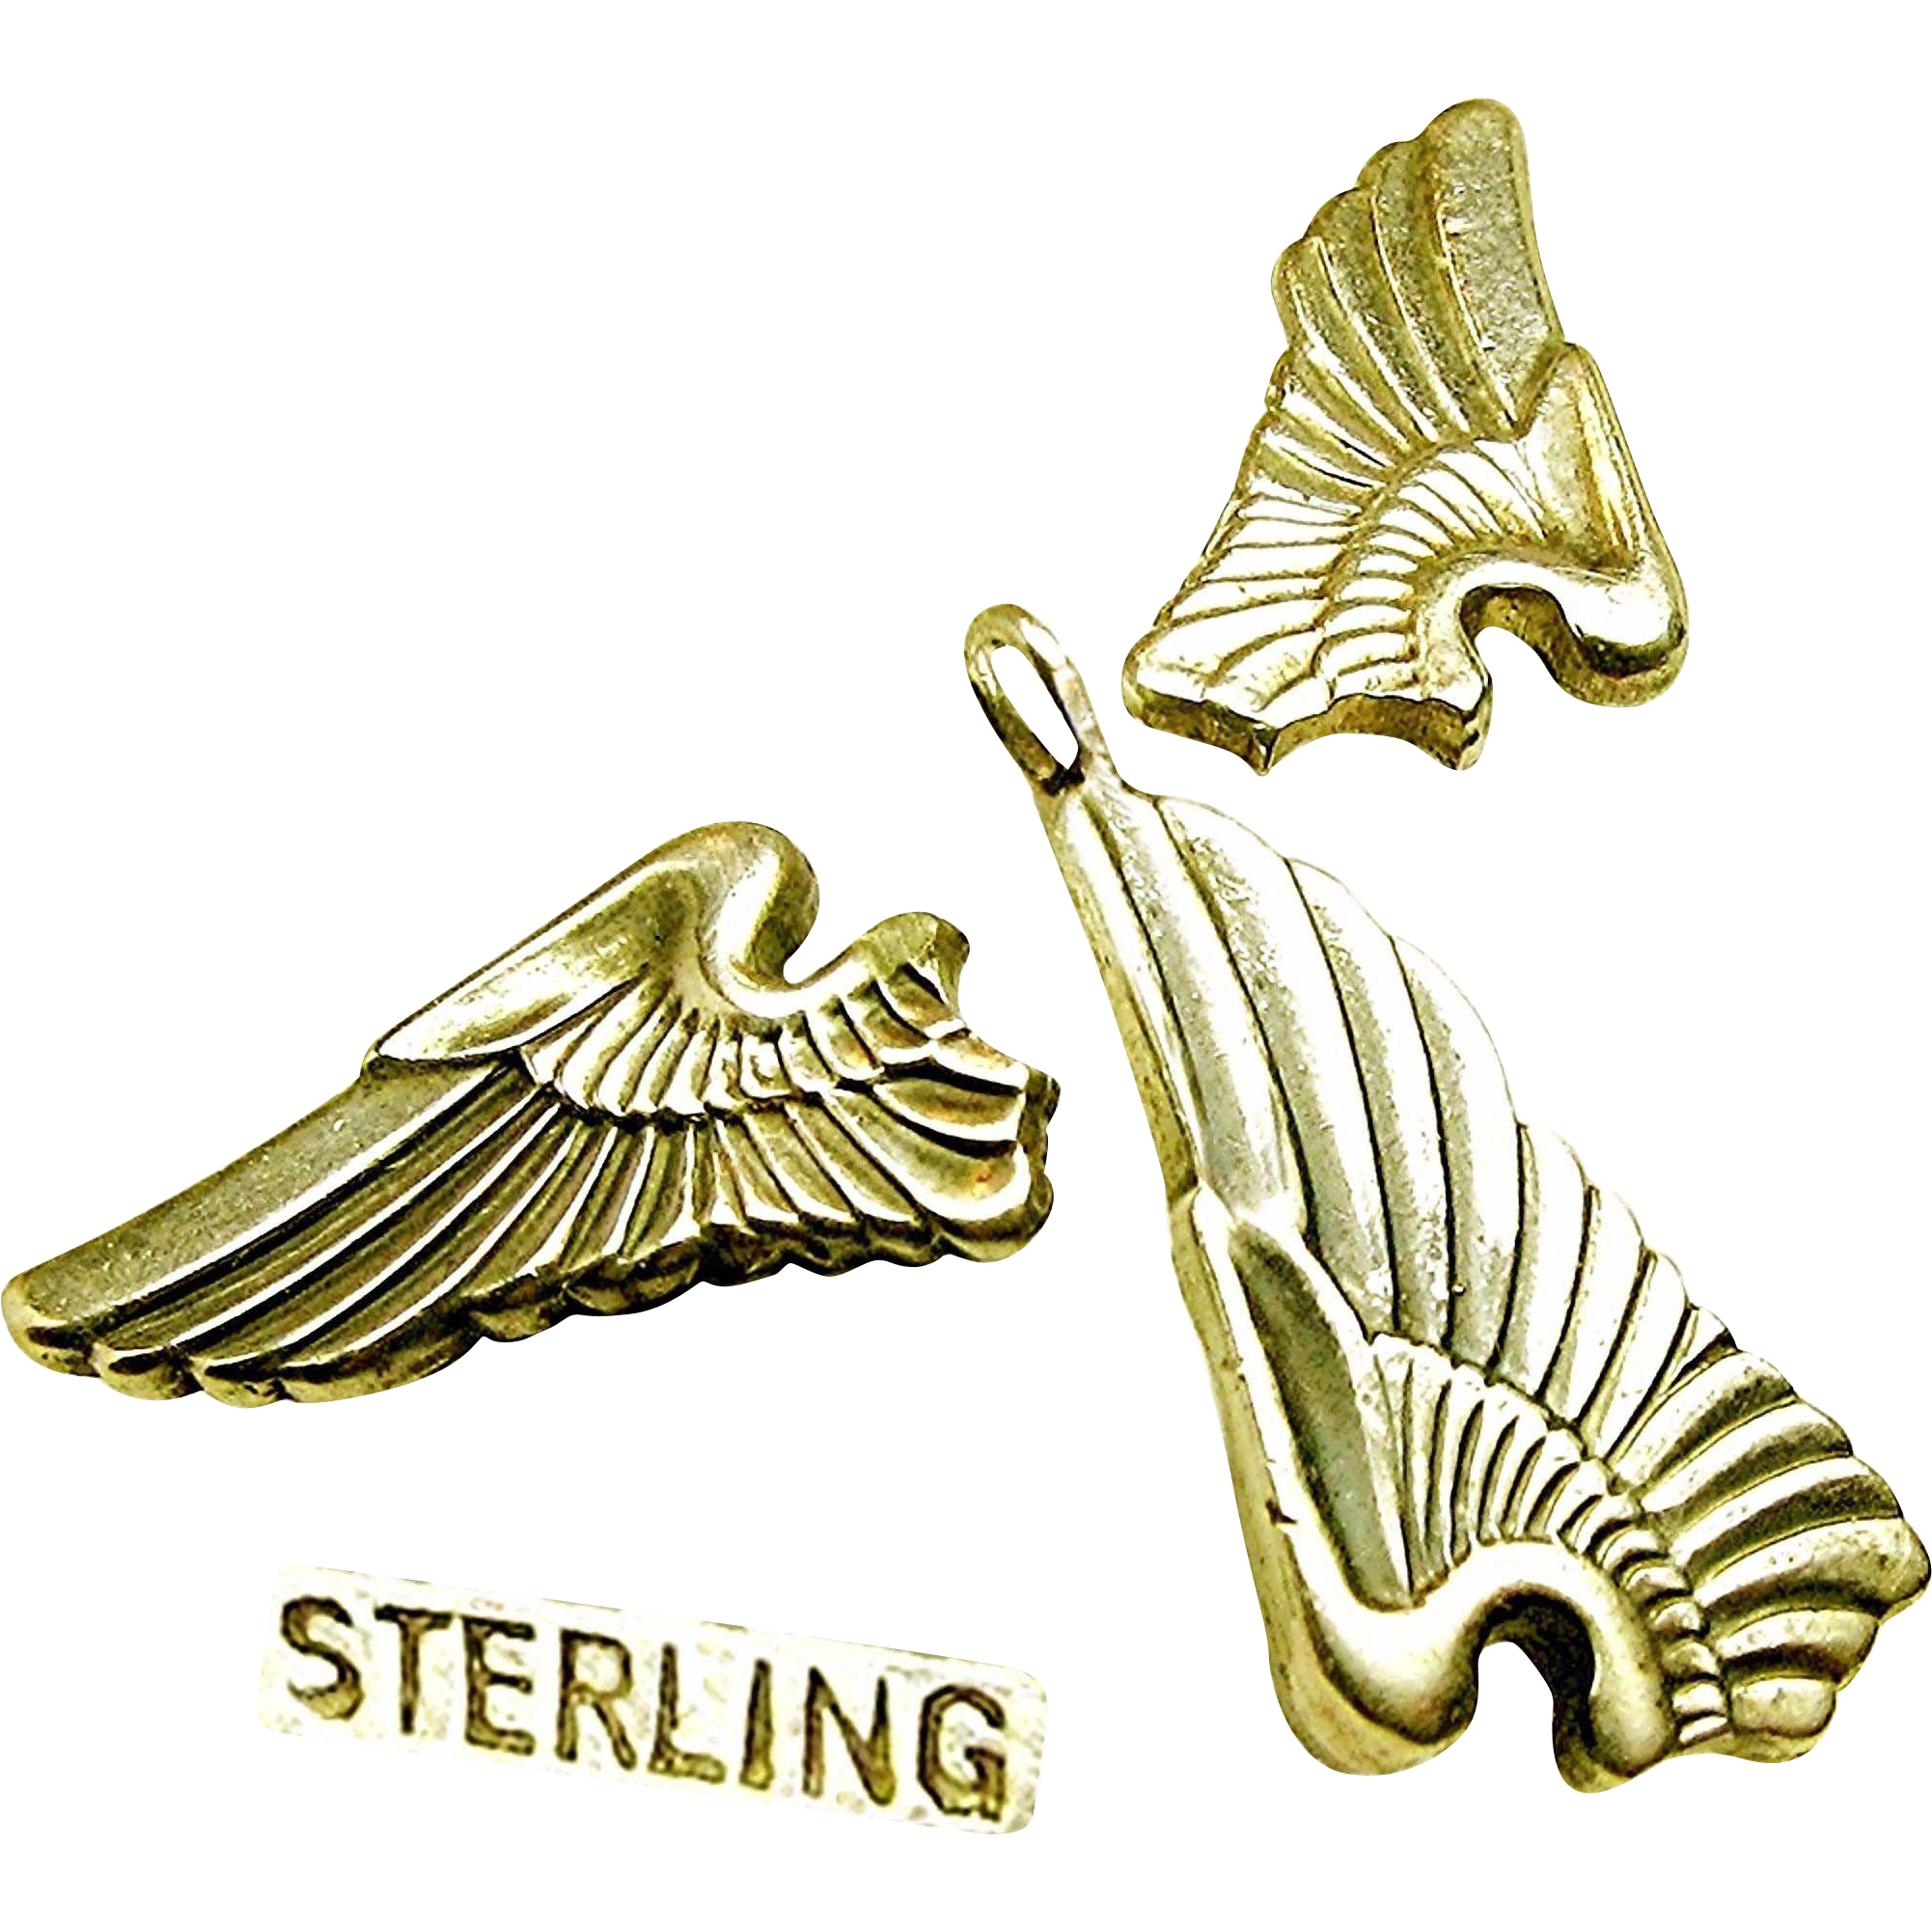 WWII SWEETHEART Sterling Earrings, Pendant 'n Chain Army Air Corp Pilot Wings c.1940's